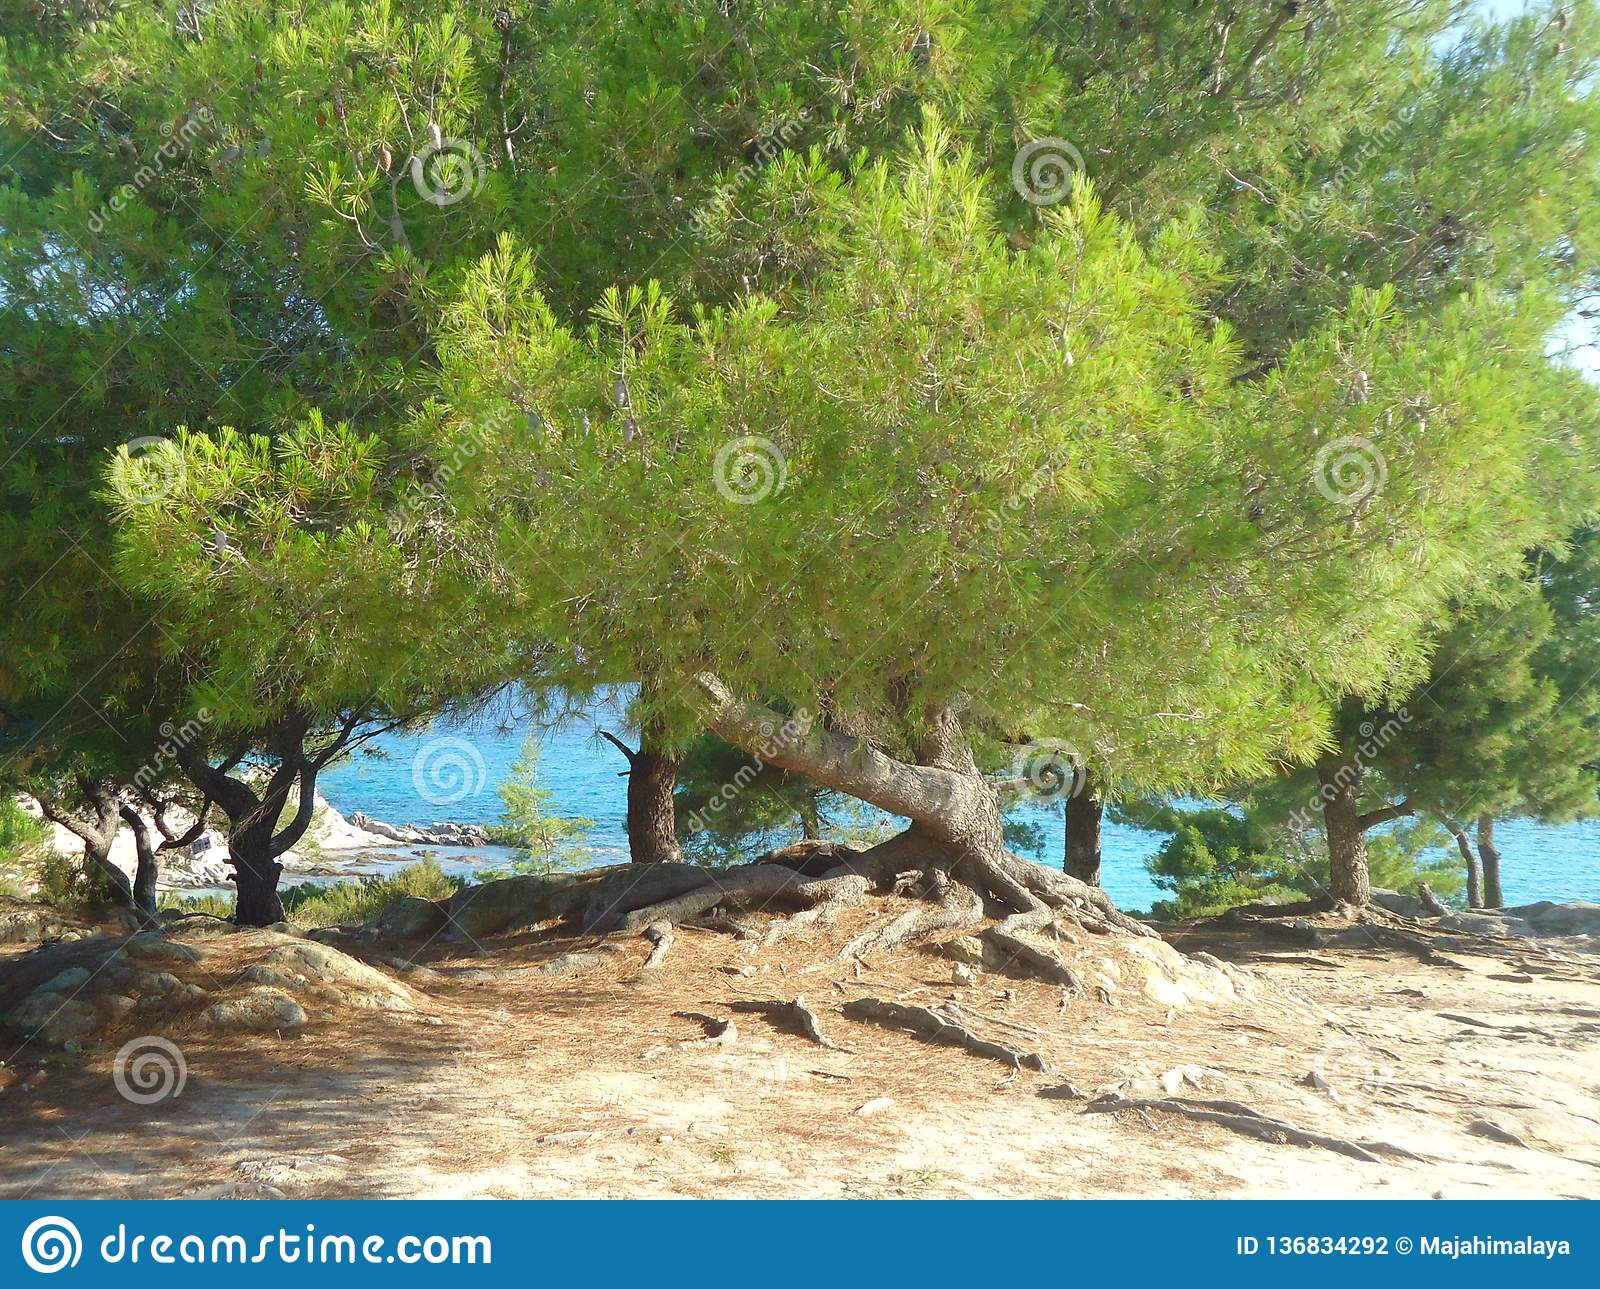 Amazing green trees by the blue sea in Greece